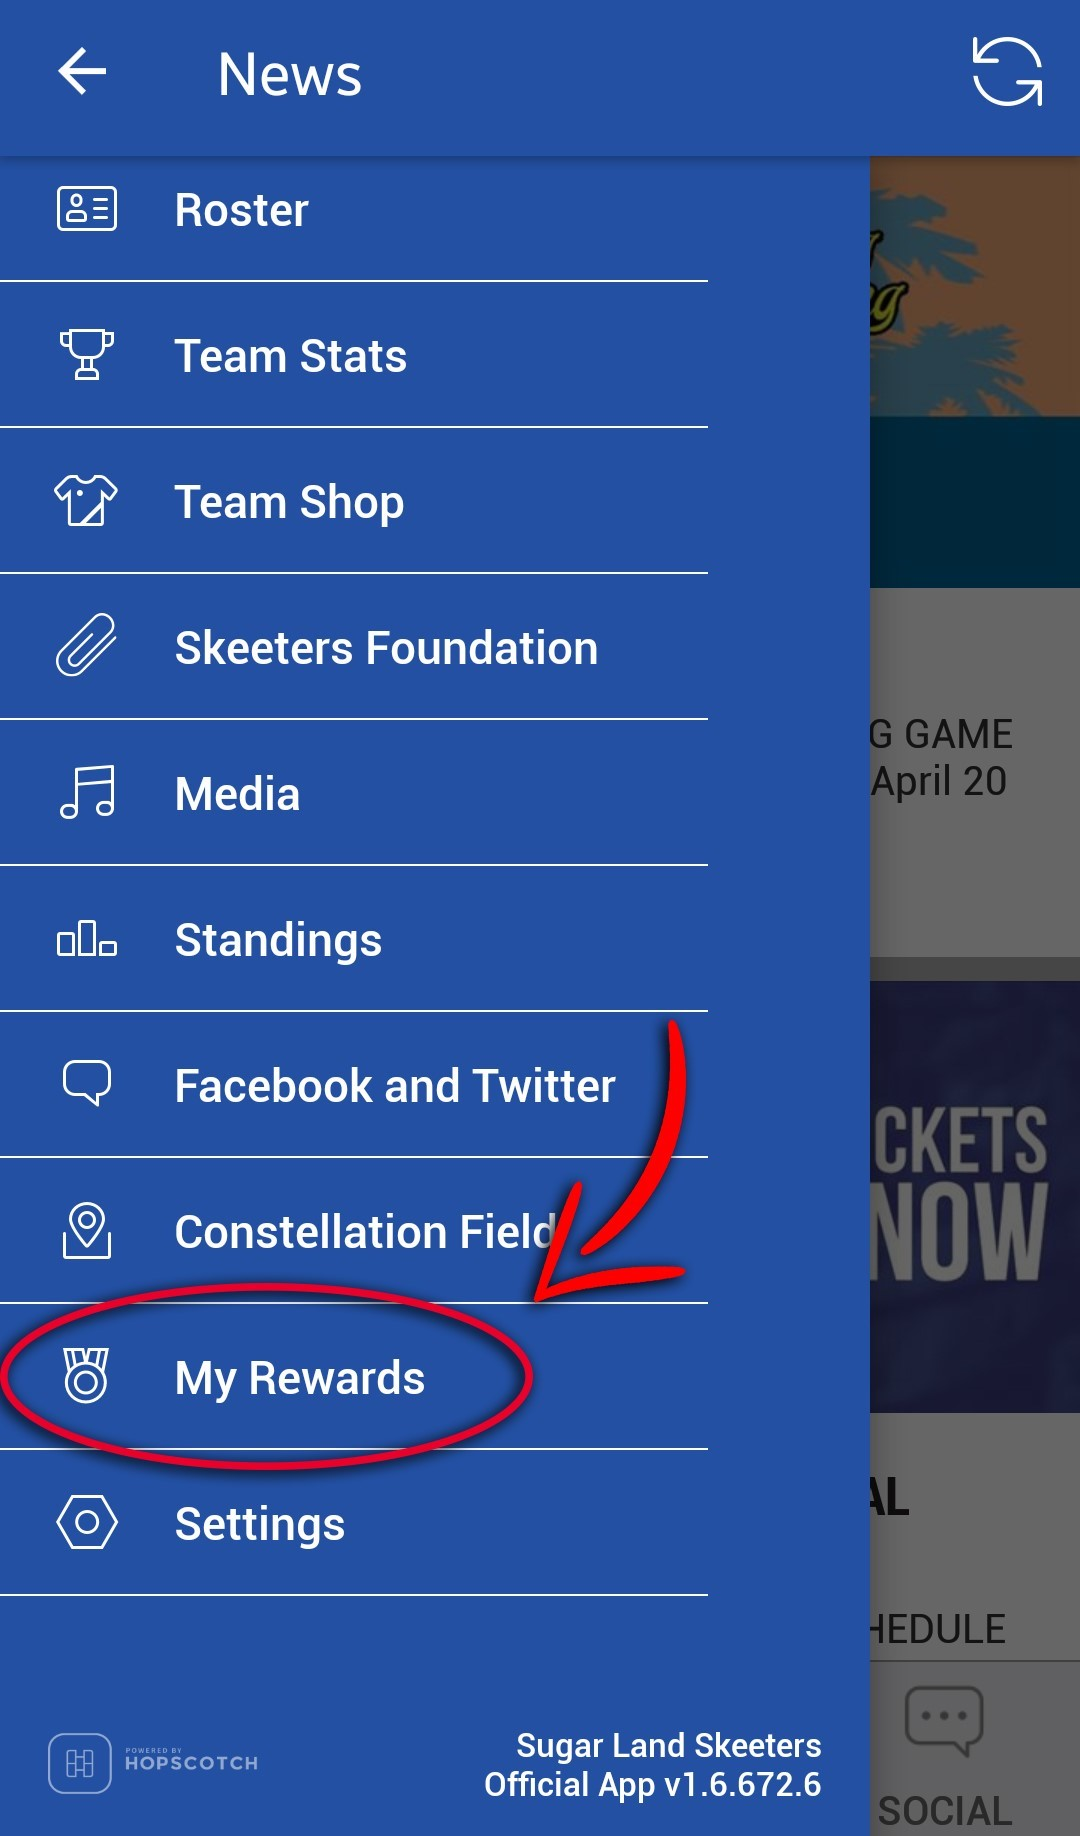 image of the settings panel for My Rewards option